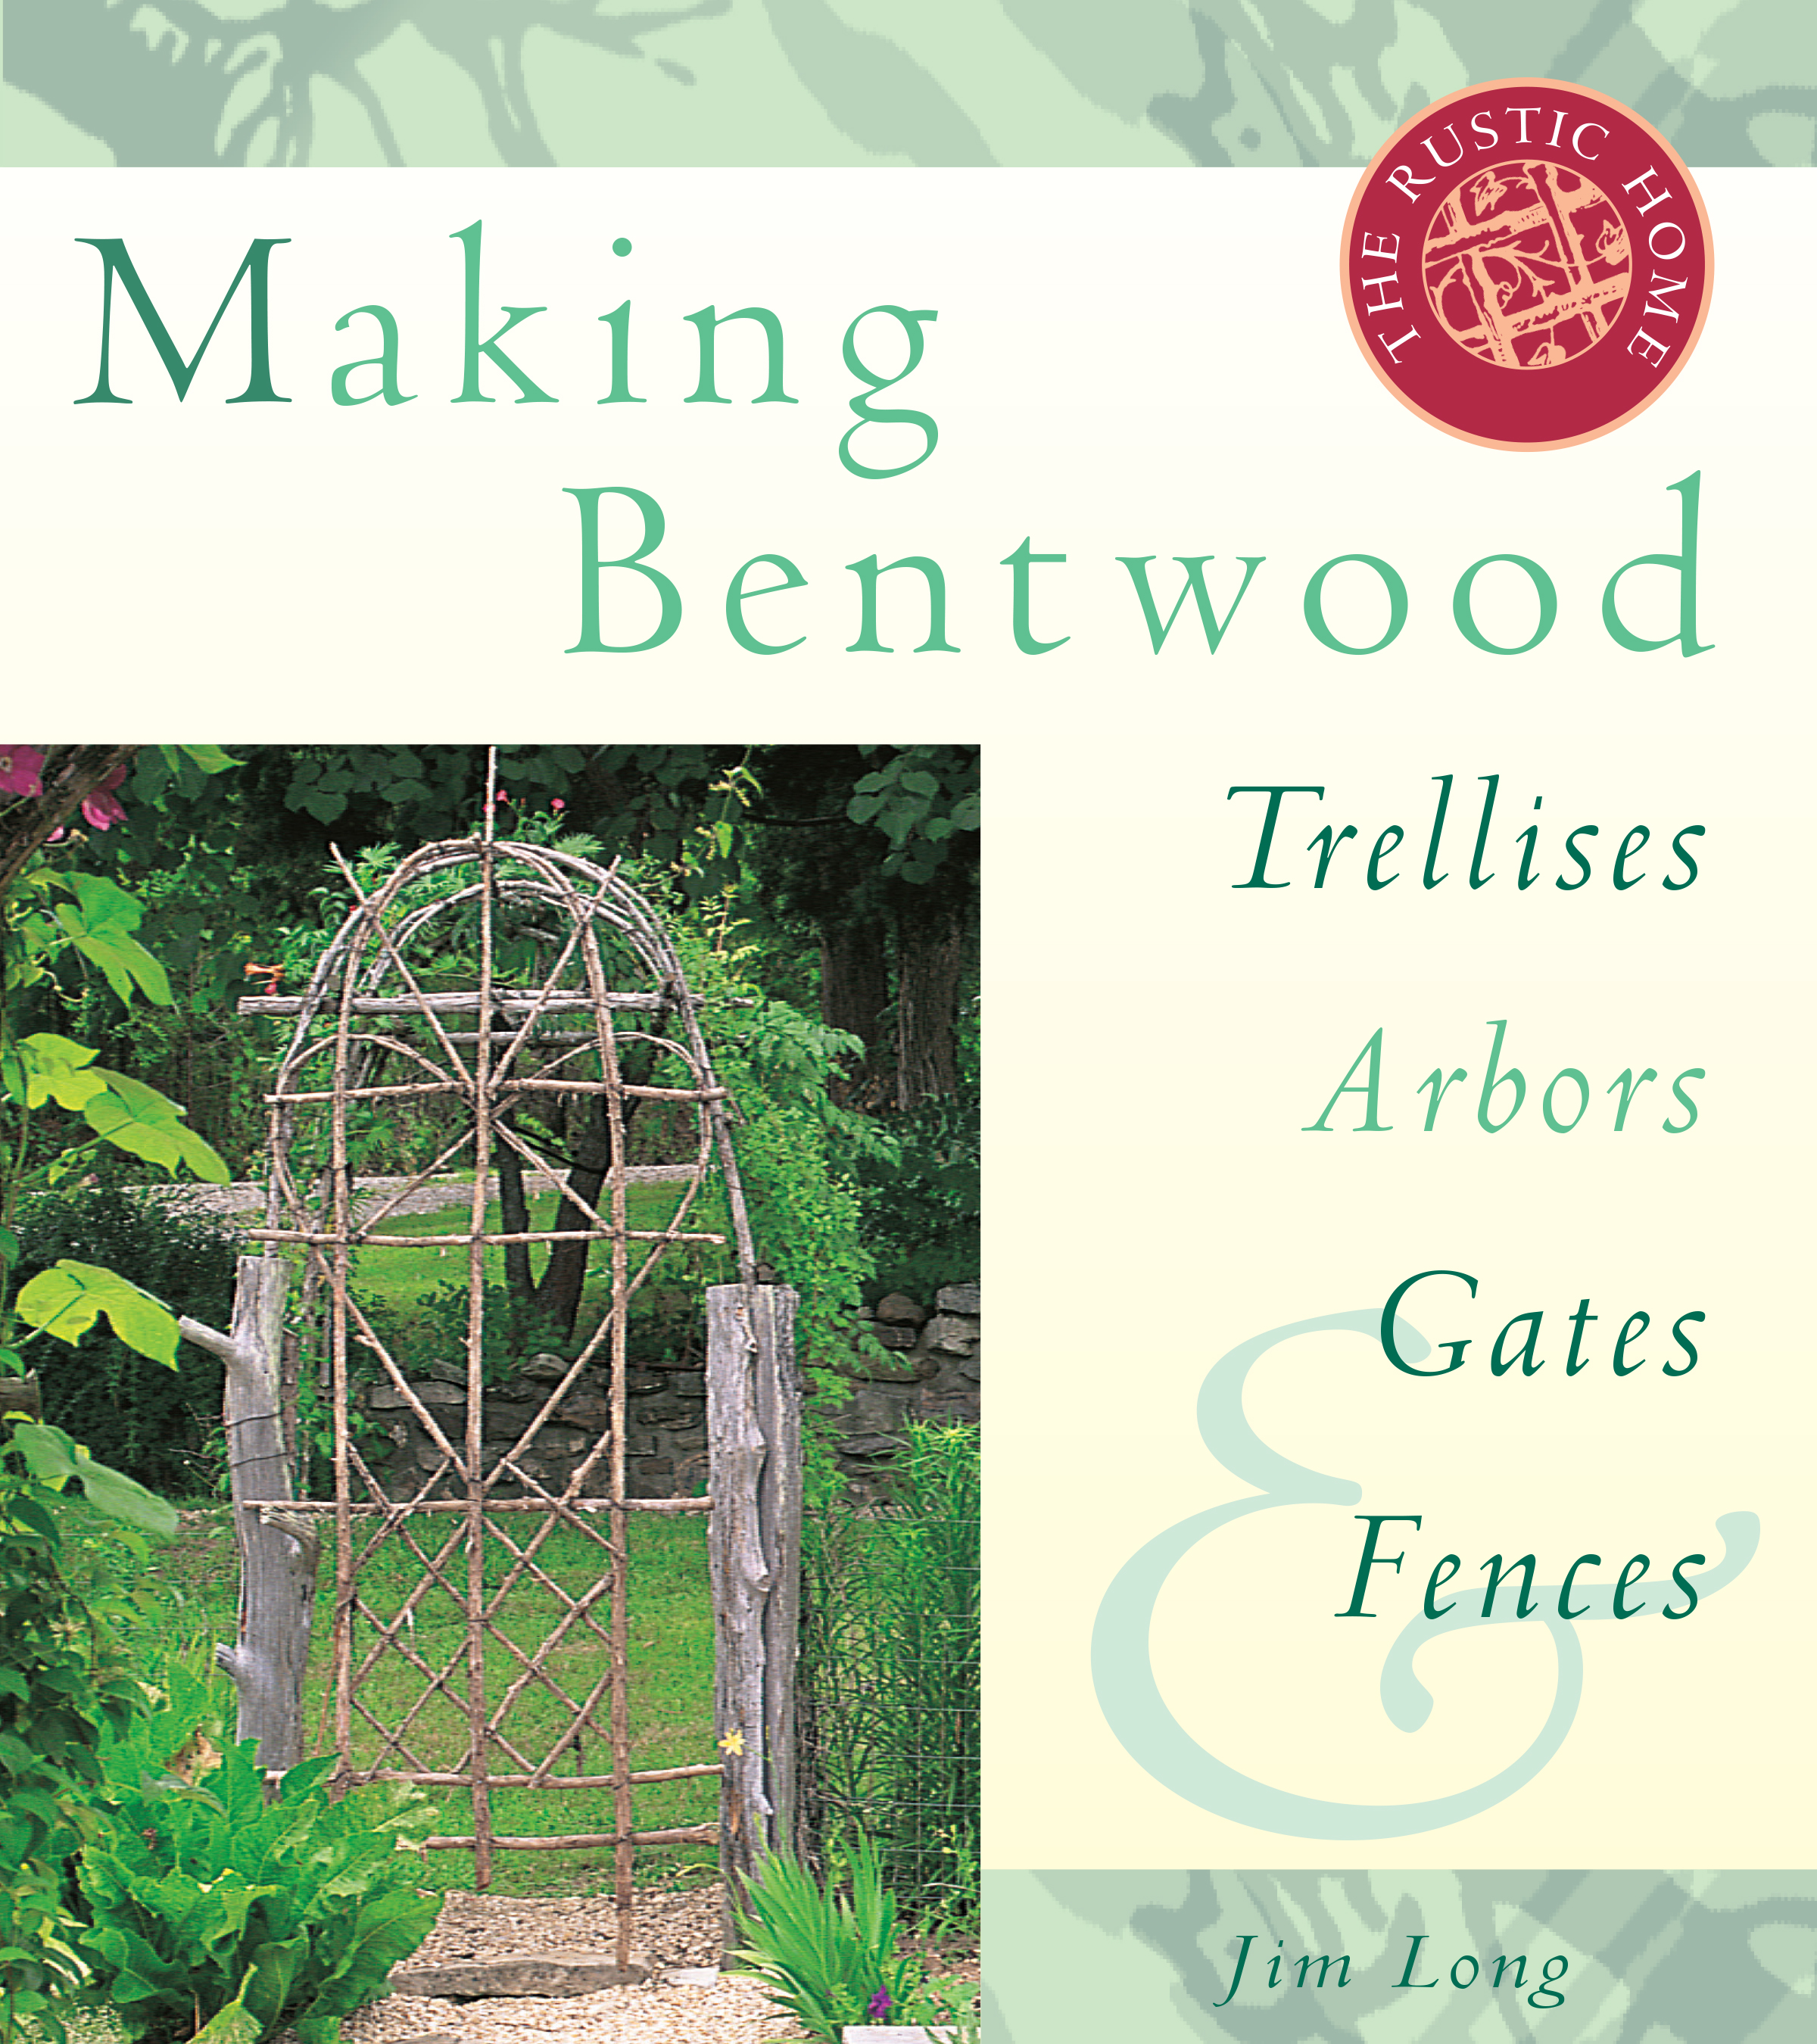 Making Bentwood Trellises, Arbors, Gates & Fences  - Jim Long